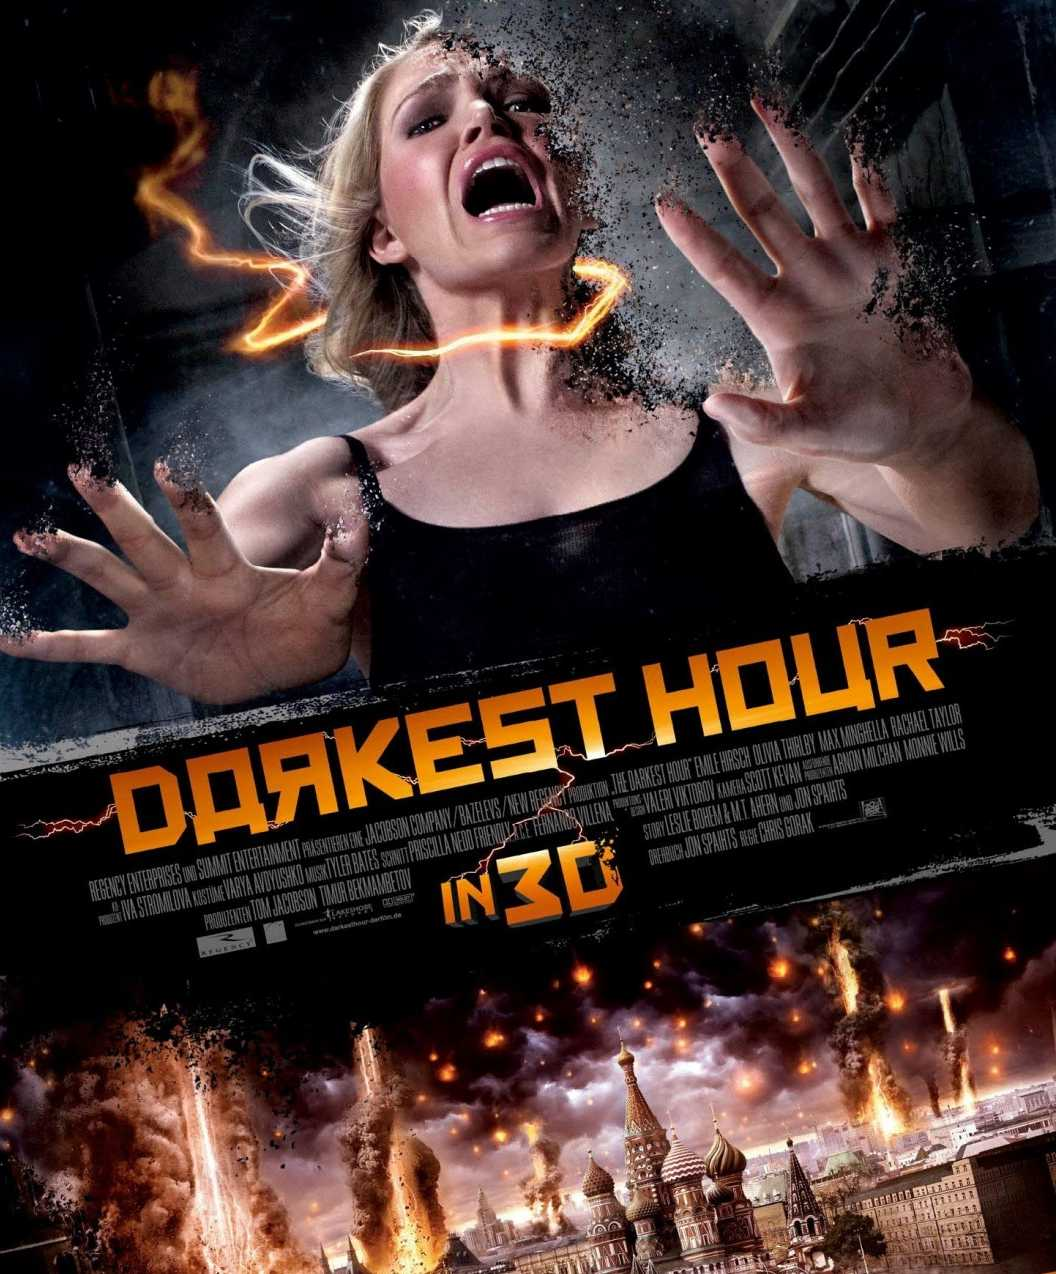 hollywood free download movies: the darkest hour 2011 english movie